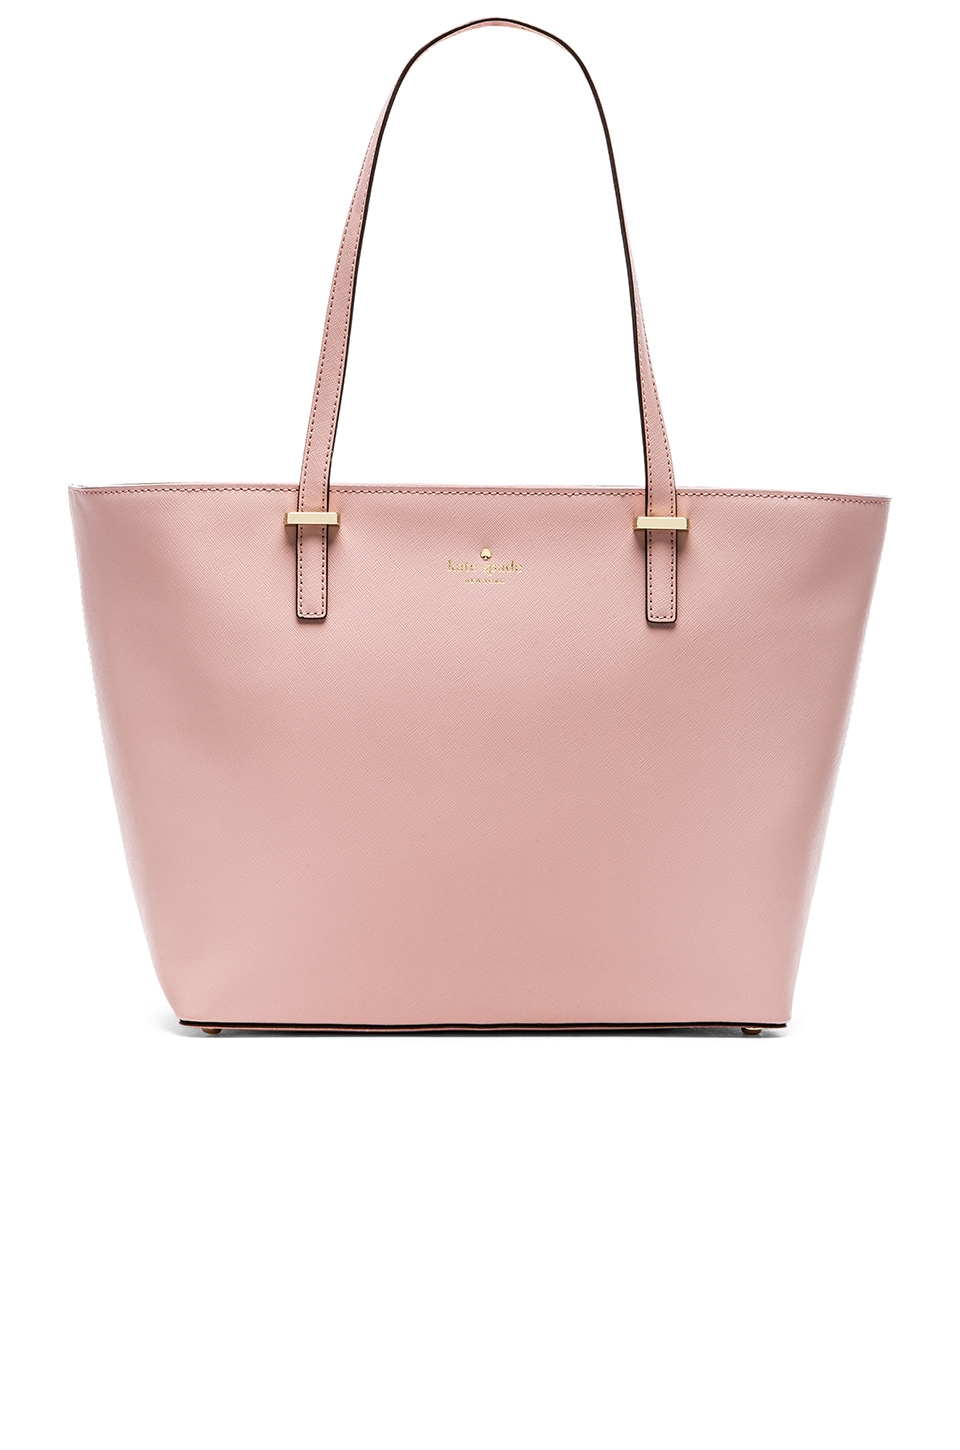 kate spade new york Small Harmony Tote in Rose Jade